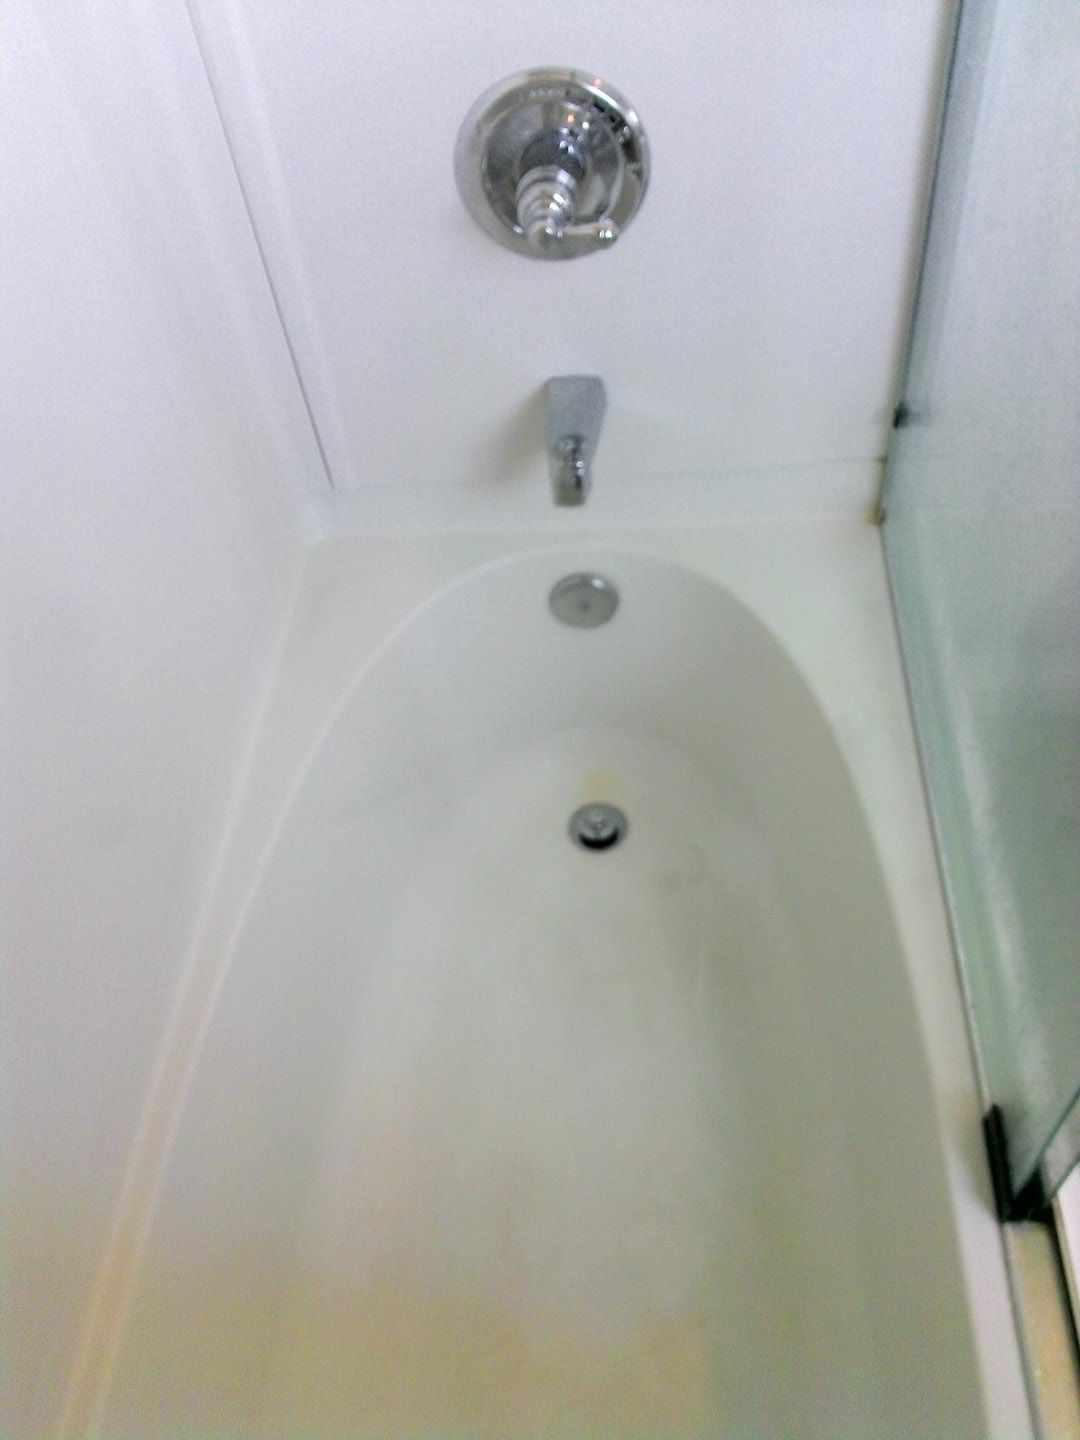 Problem Calcium Deposits On Tub And Shower Doors Remedy Vinegar In